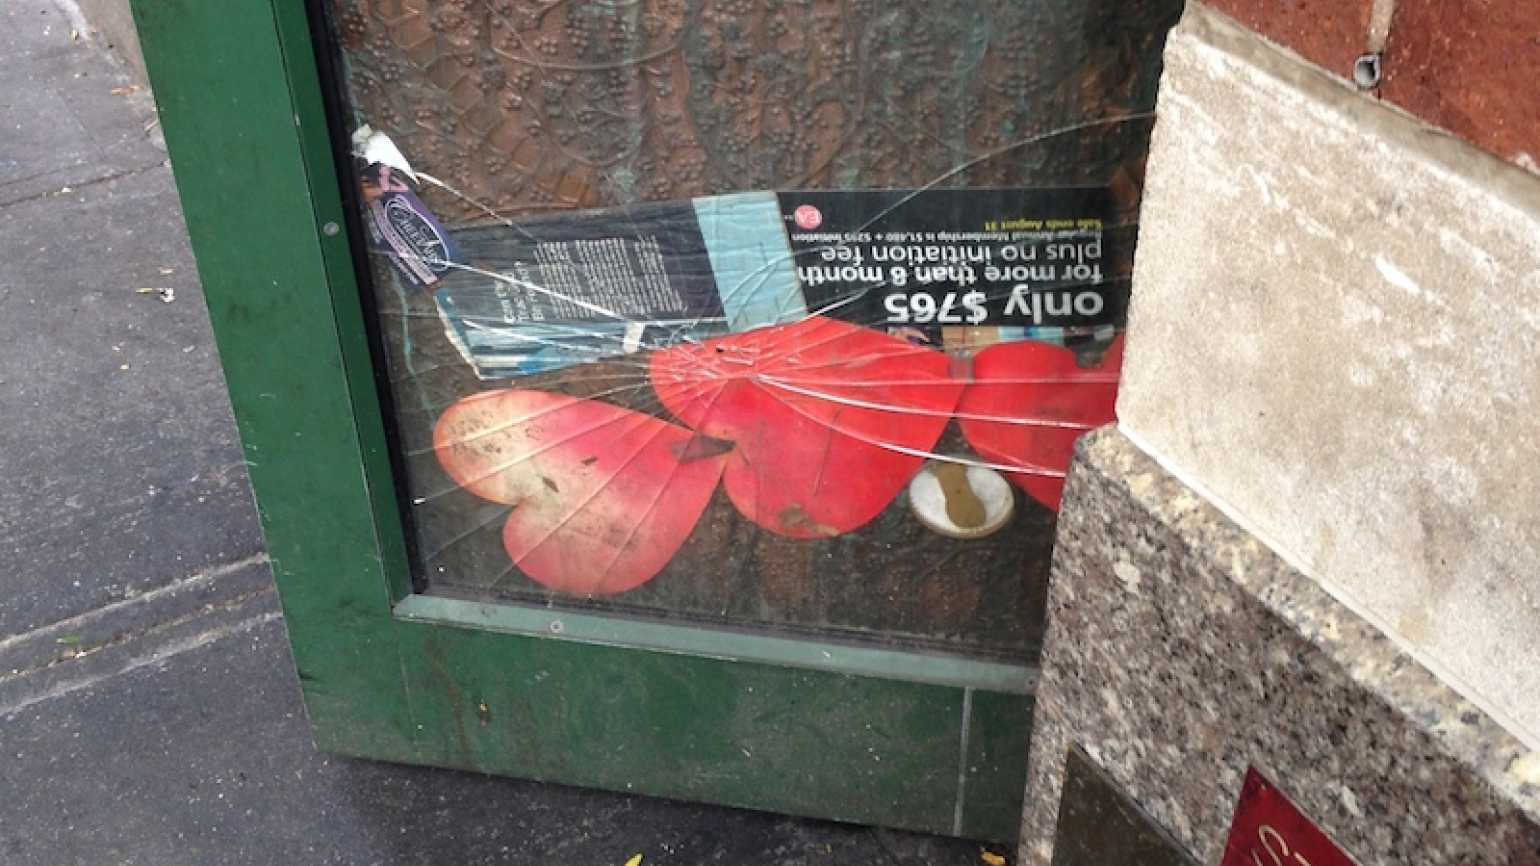 Diana Aydin sees hearts all over New York City.